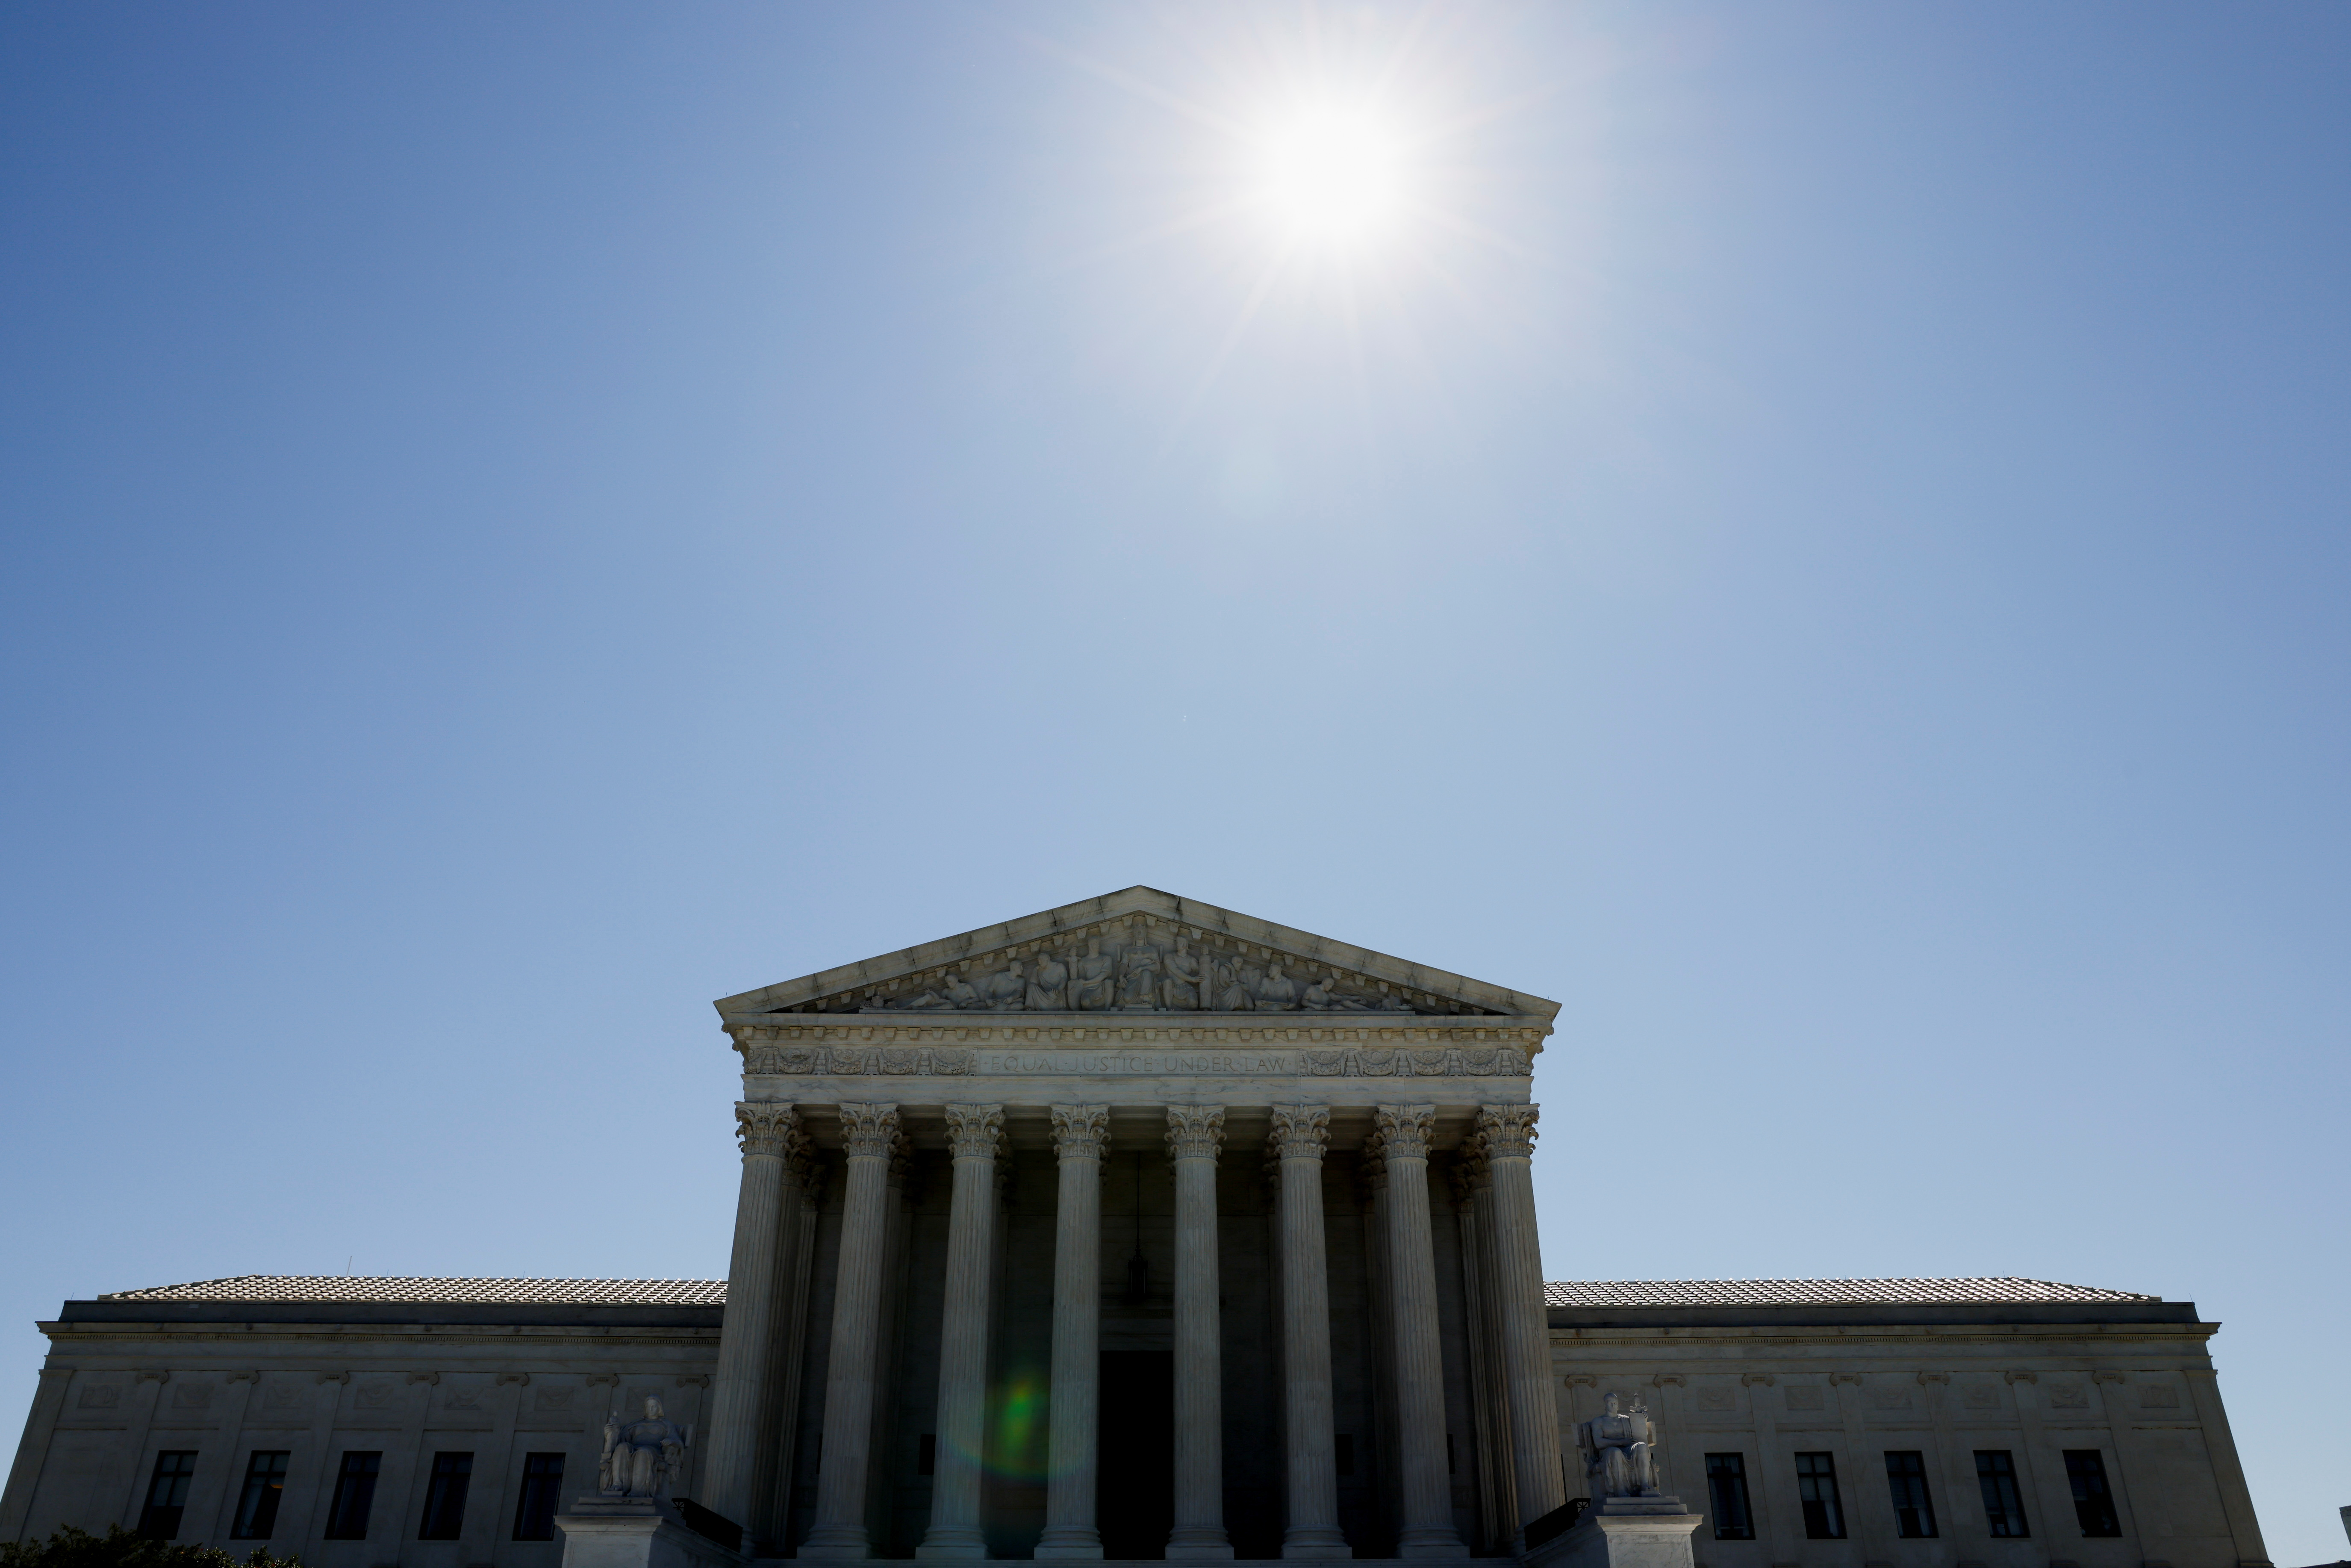 The U.S. Supreme Court building is seen on the day justices rejected a Republican bid that had been backed by former President Donald Trump's administration to invalidate the Obamacare healthcare law in Washington, U.S., June 17, 2021. REUTERS/Jonathan Ernst